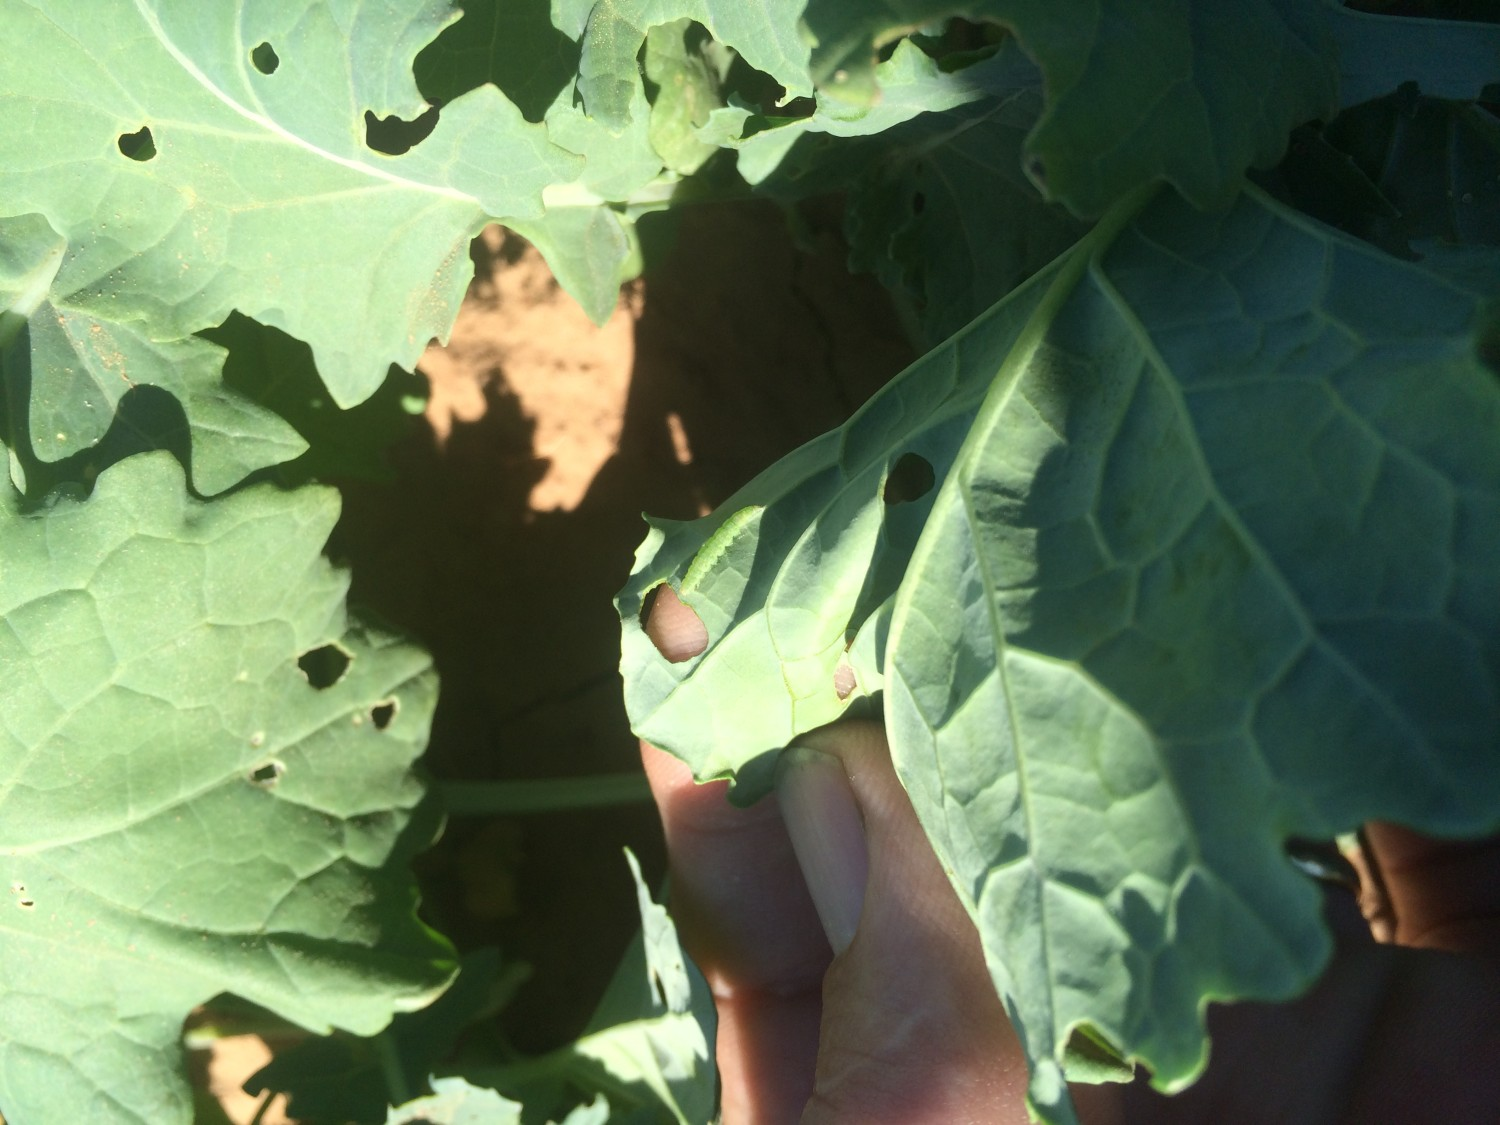 Canola: Insects and Glyphosate